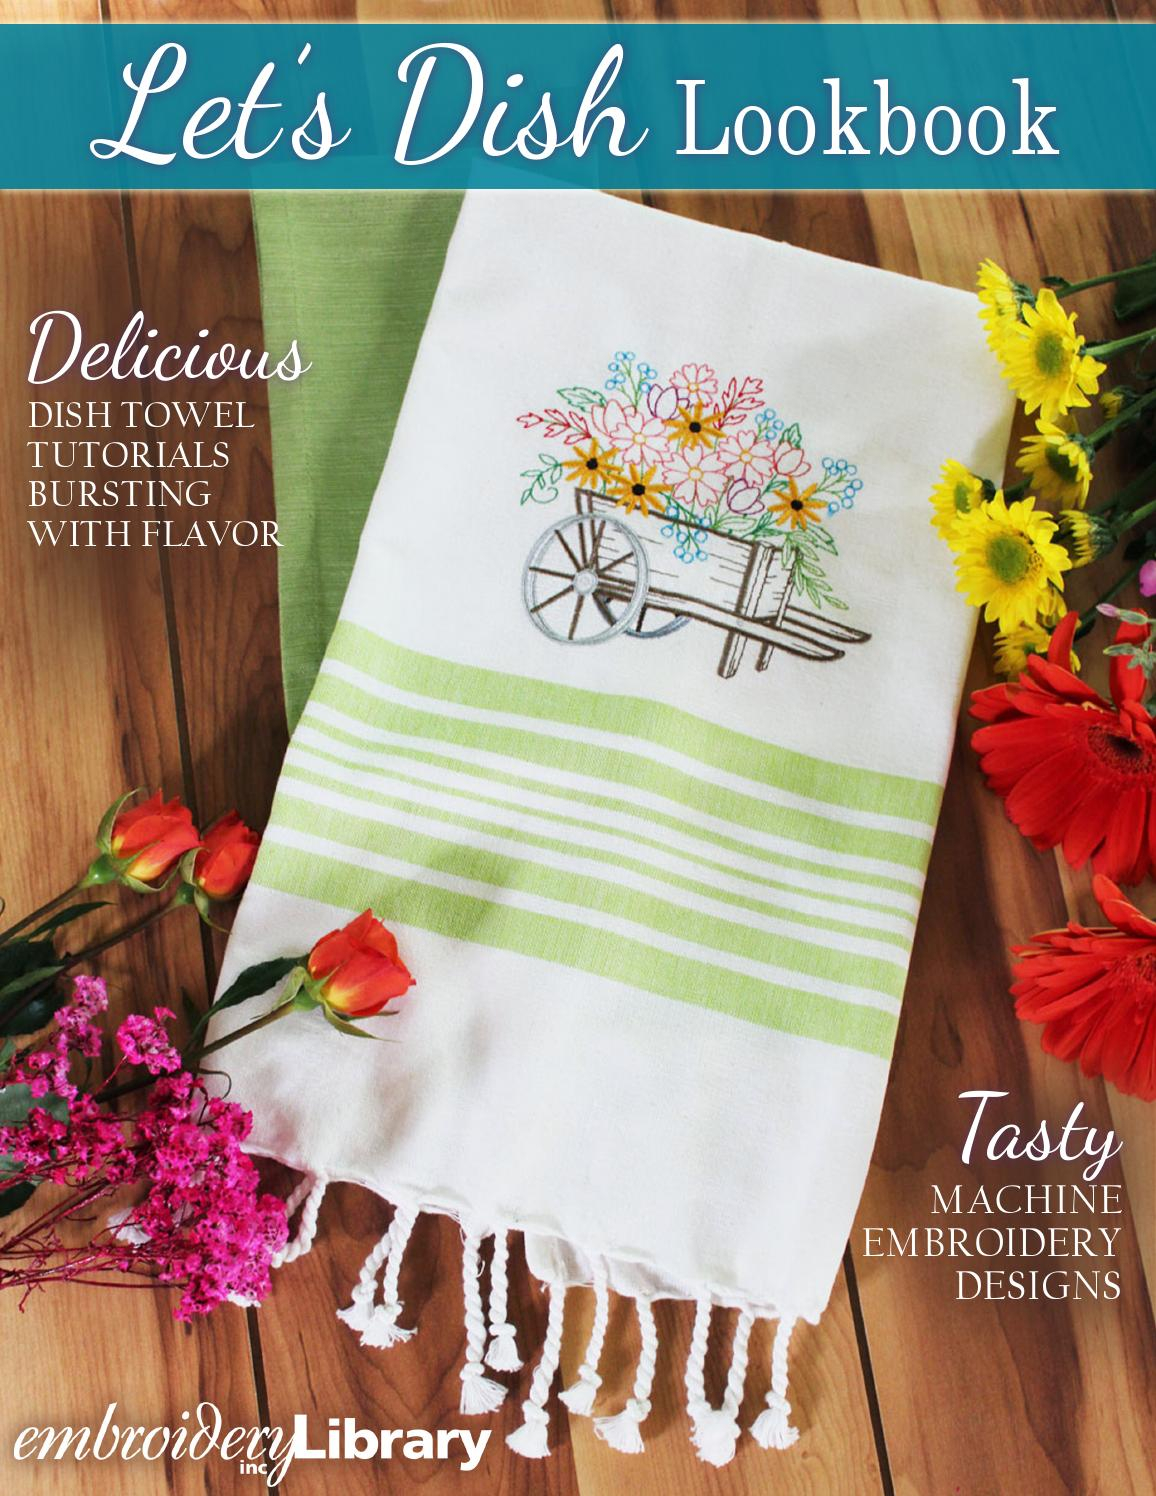 Kitchen Towel Embroidery Patterns Embroidery Library Lets Dish Lookbook Embroidery Library Issuu